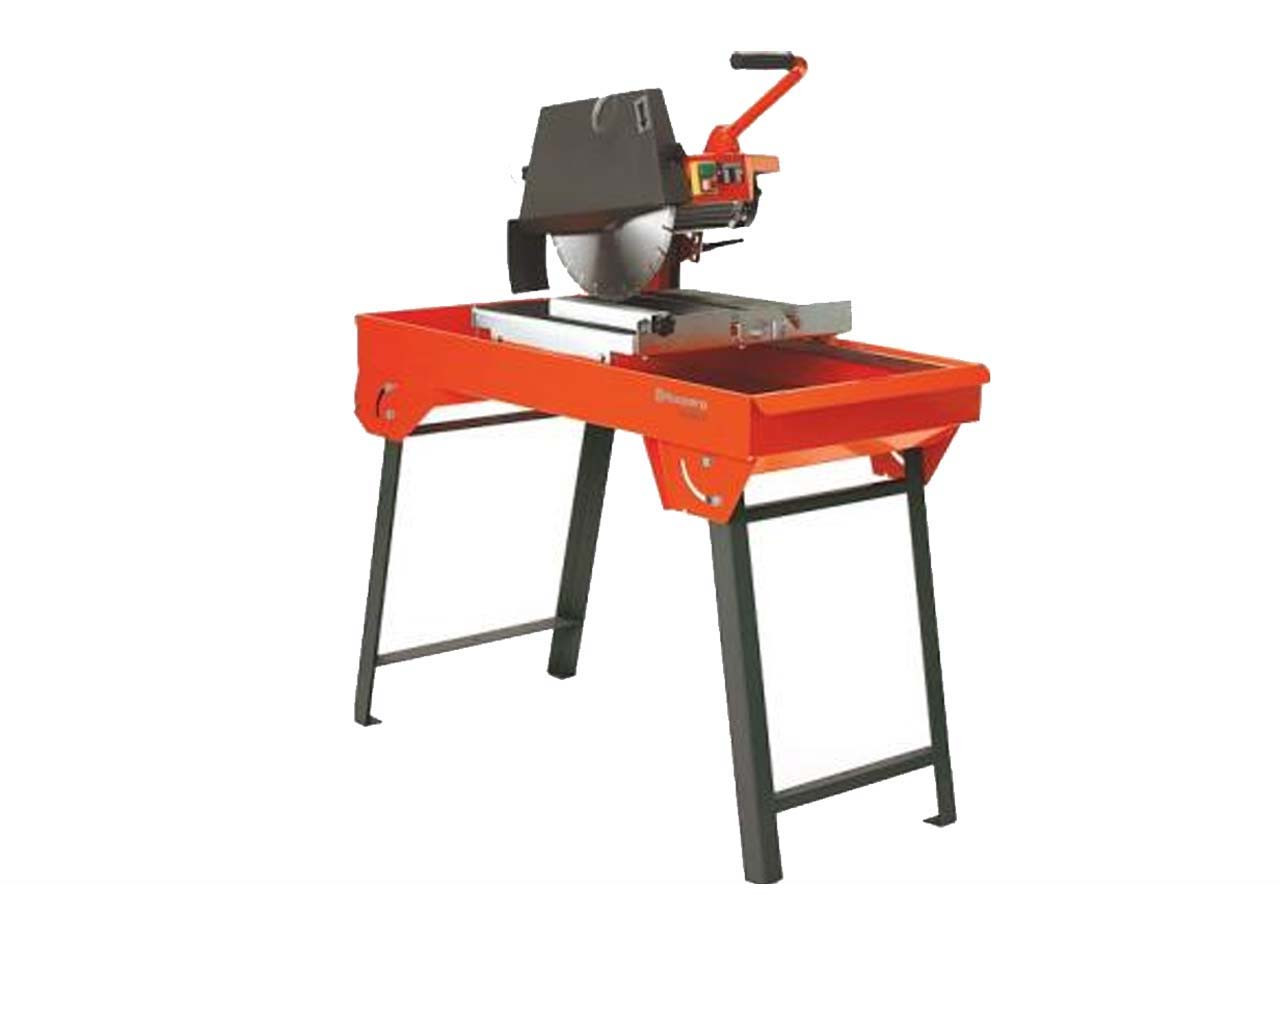 Husqvarna Ts300e Masonry Tile Amp Brick Table Saw